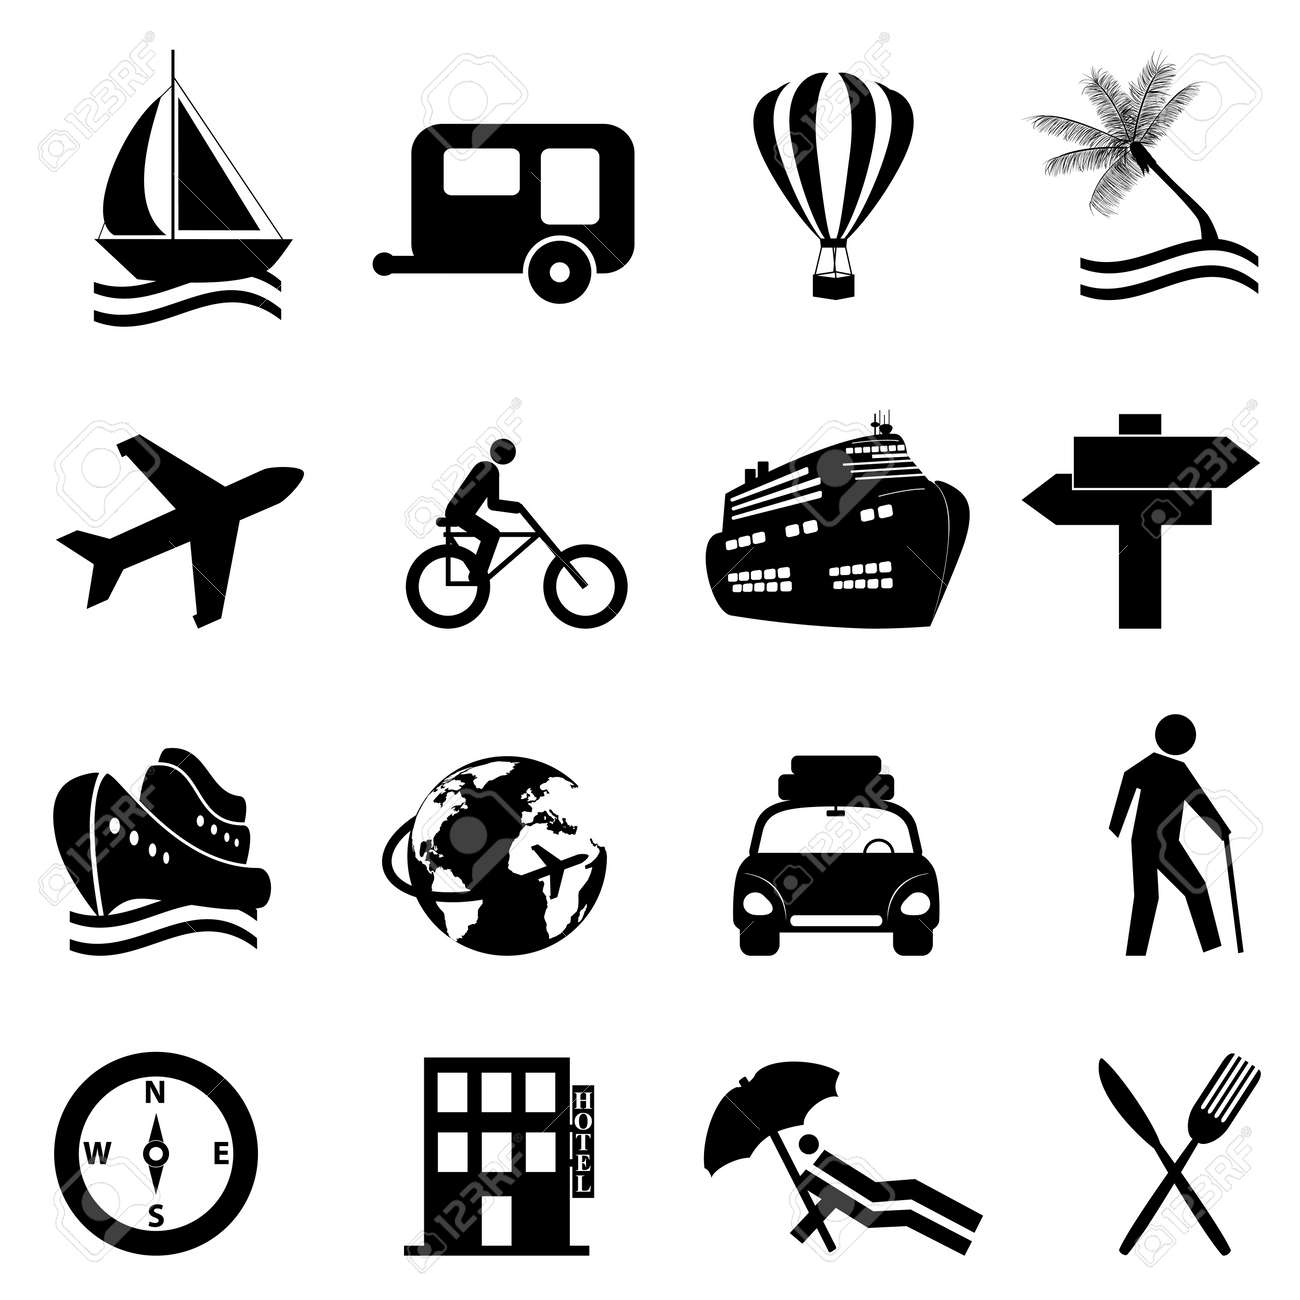 Leisure, travel and recreation icon set on white background Stock Vector - 11904956